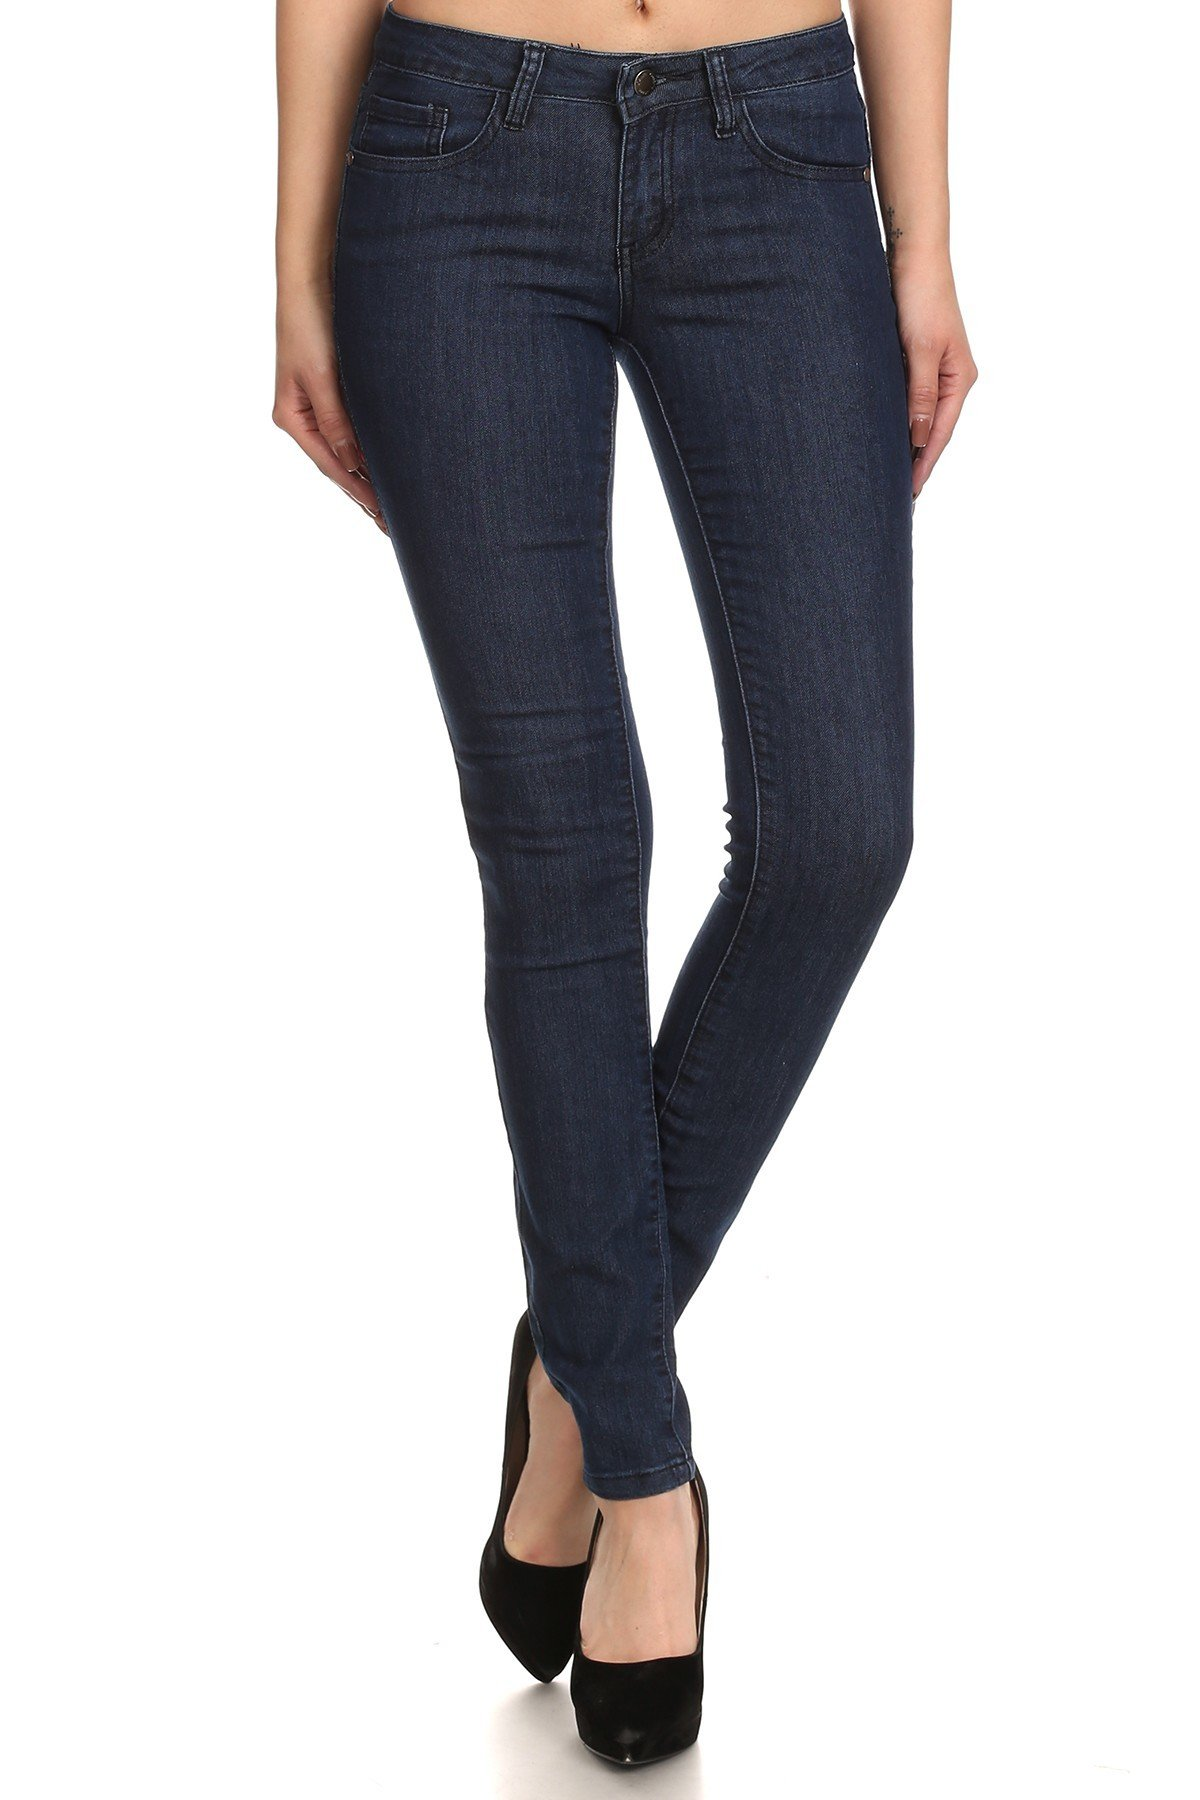 Denim Couture Skinny Jean 000449